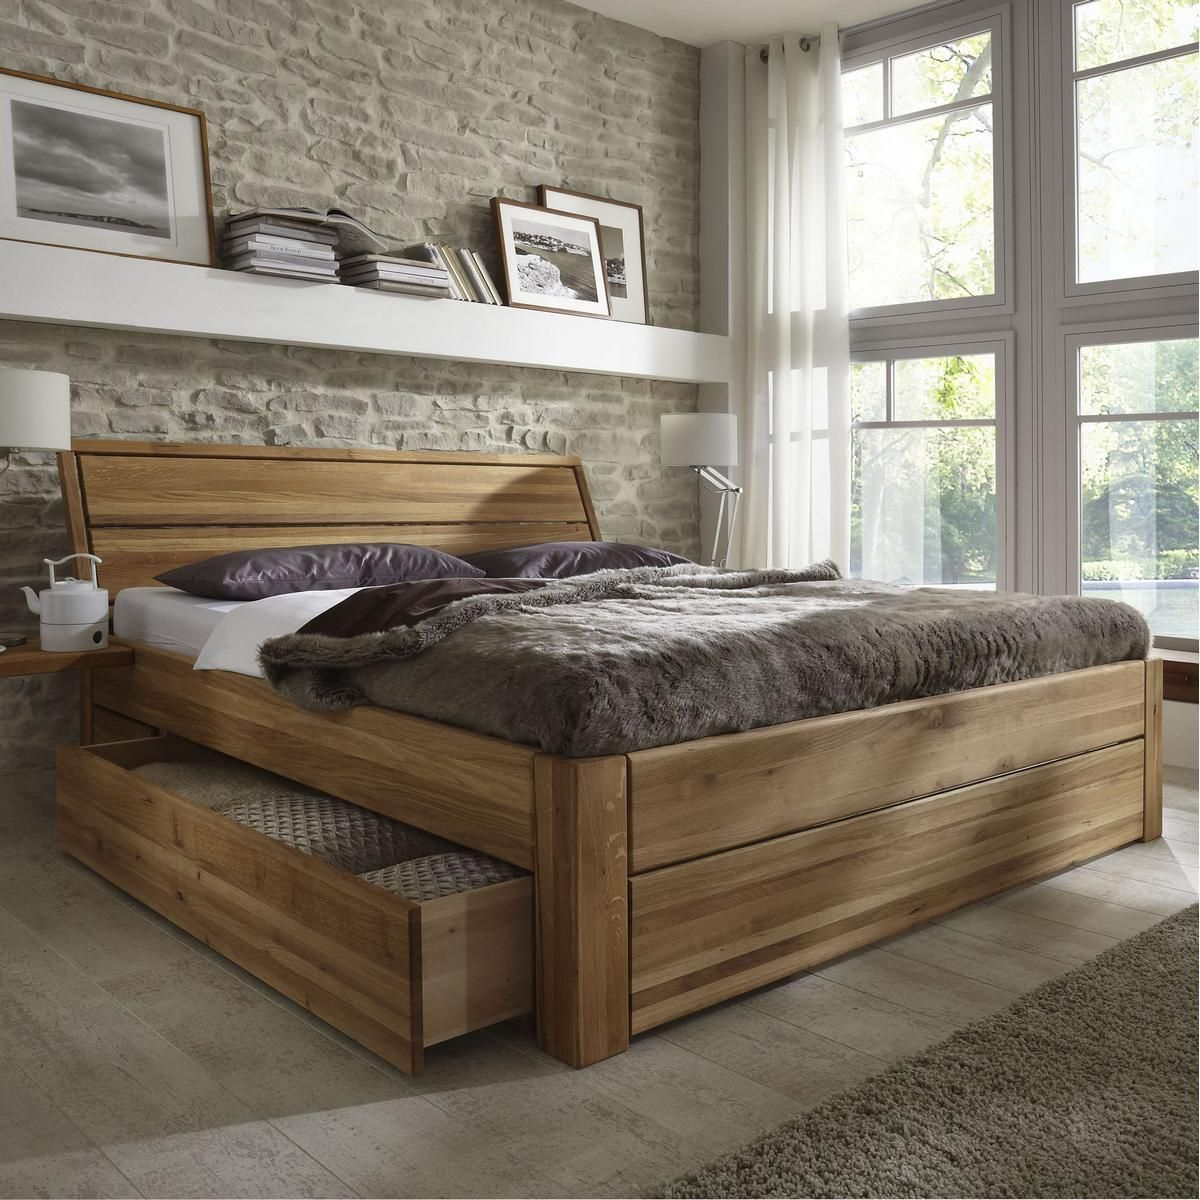 massivholz schubladenbett 180x200 holzbett bett eiche massiv ge lt schlafzimmer in 2018. Black Bedroom Furniture Sets. Home Design Ideas